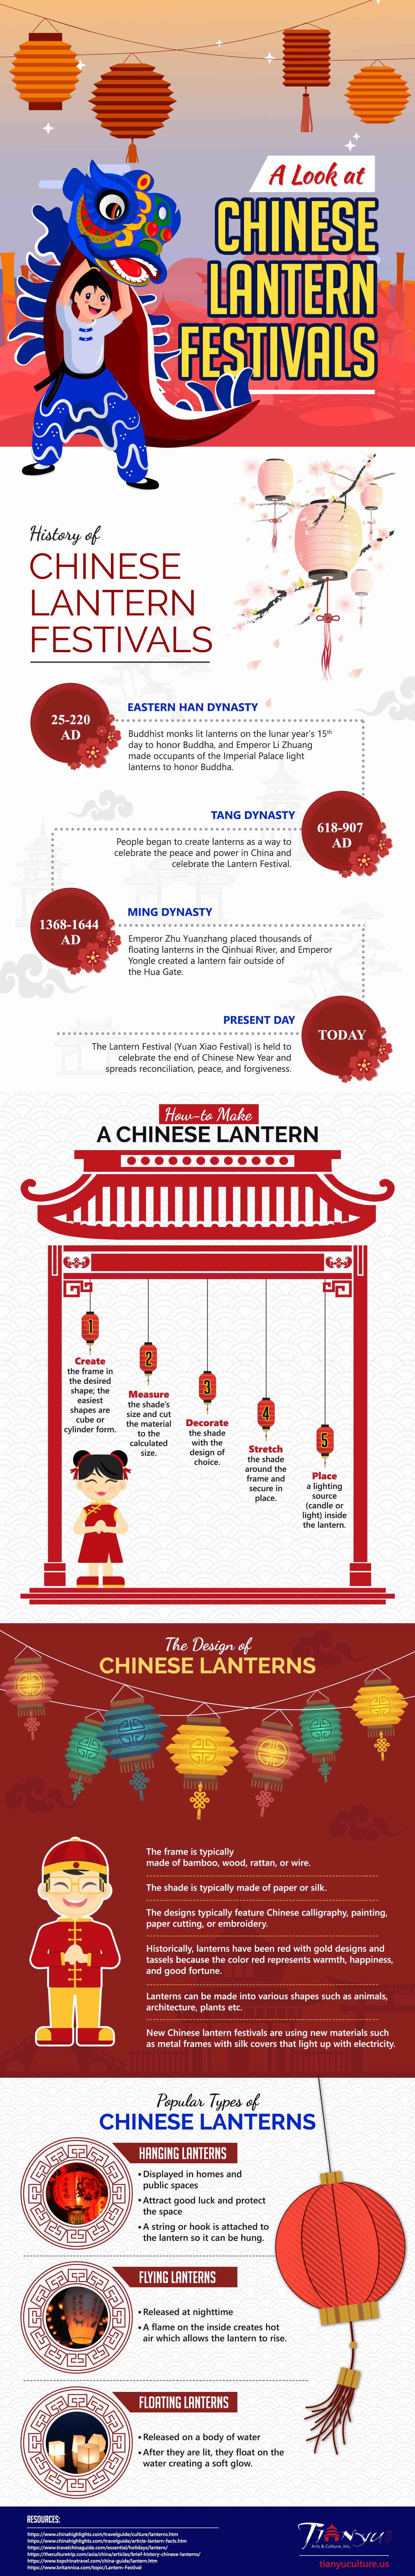 Chinese Lantern Festival - Credit: https://tianyuculture.us/a-look-at-chinese-lantern-festivals/